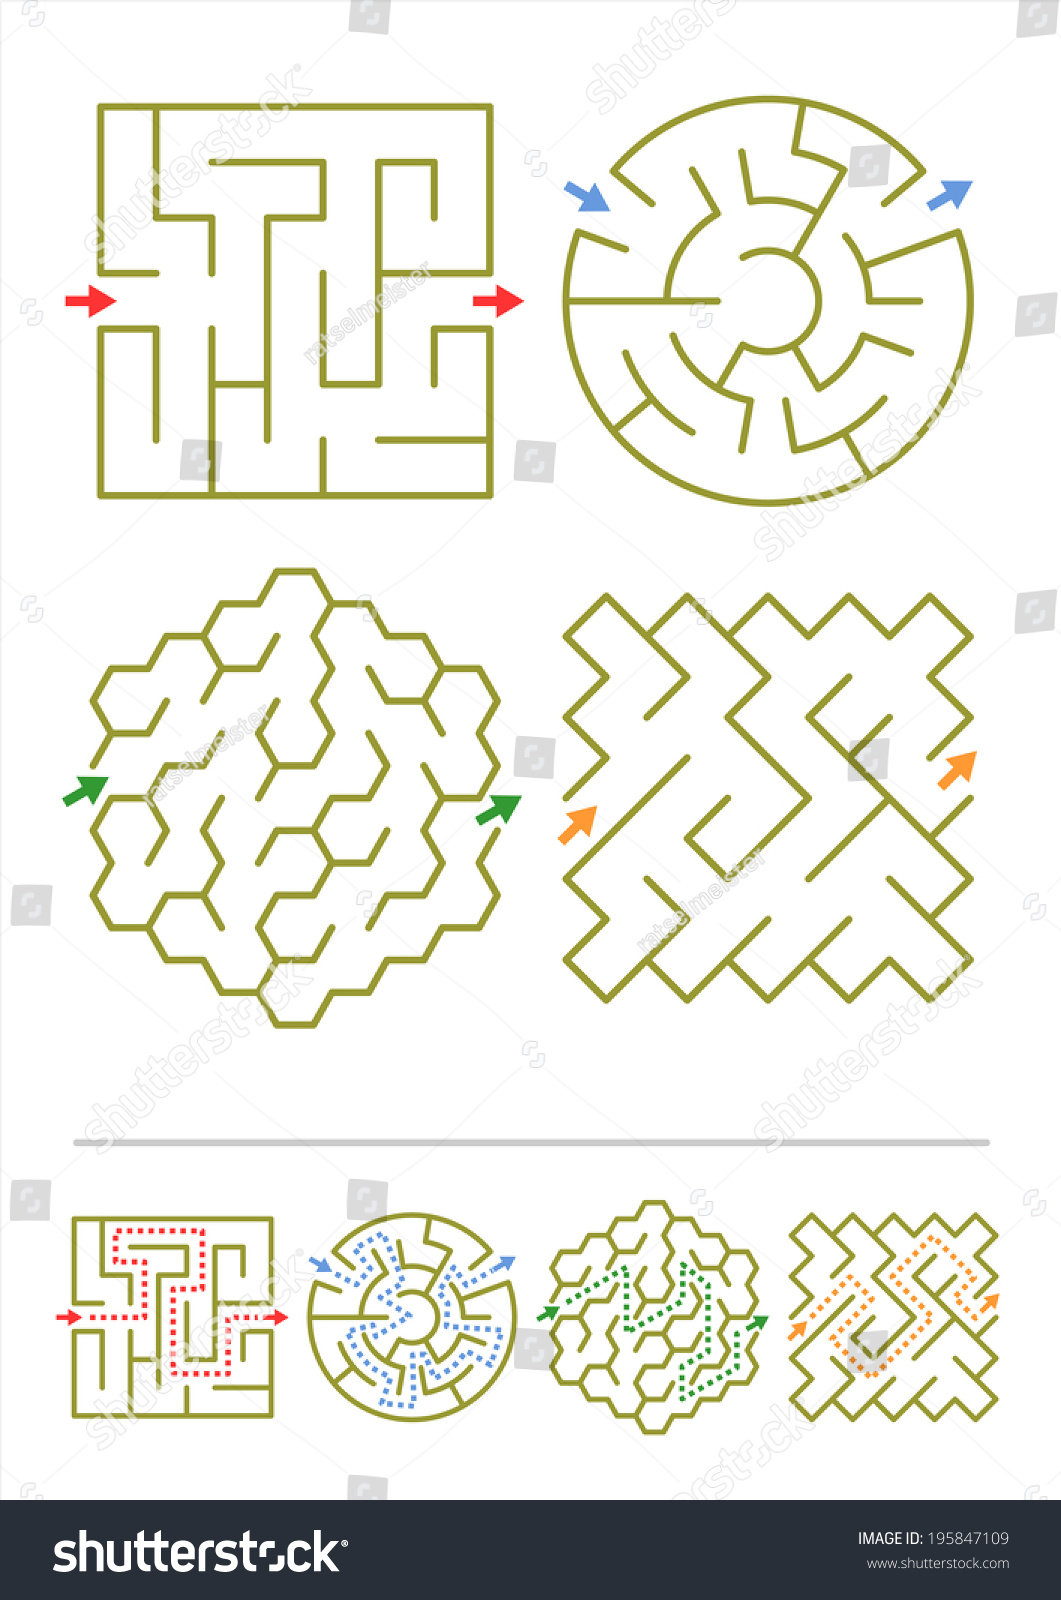 Four Simple Mazes Various Shapes Answers Stock